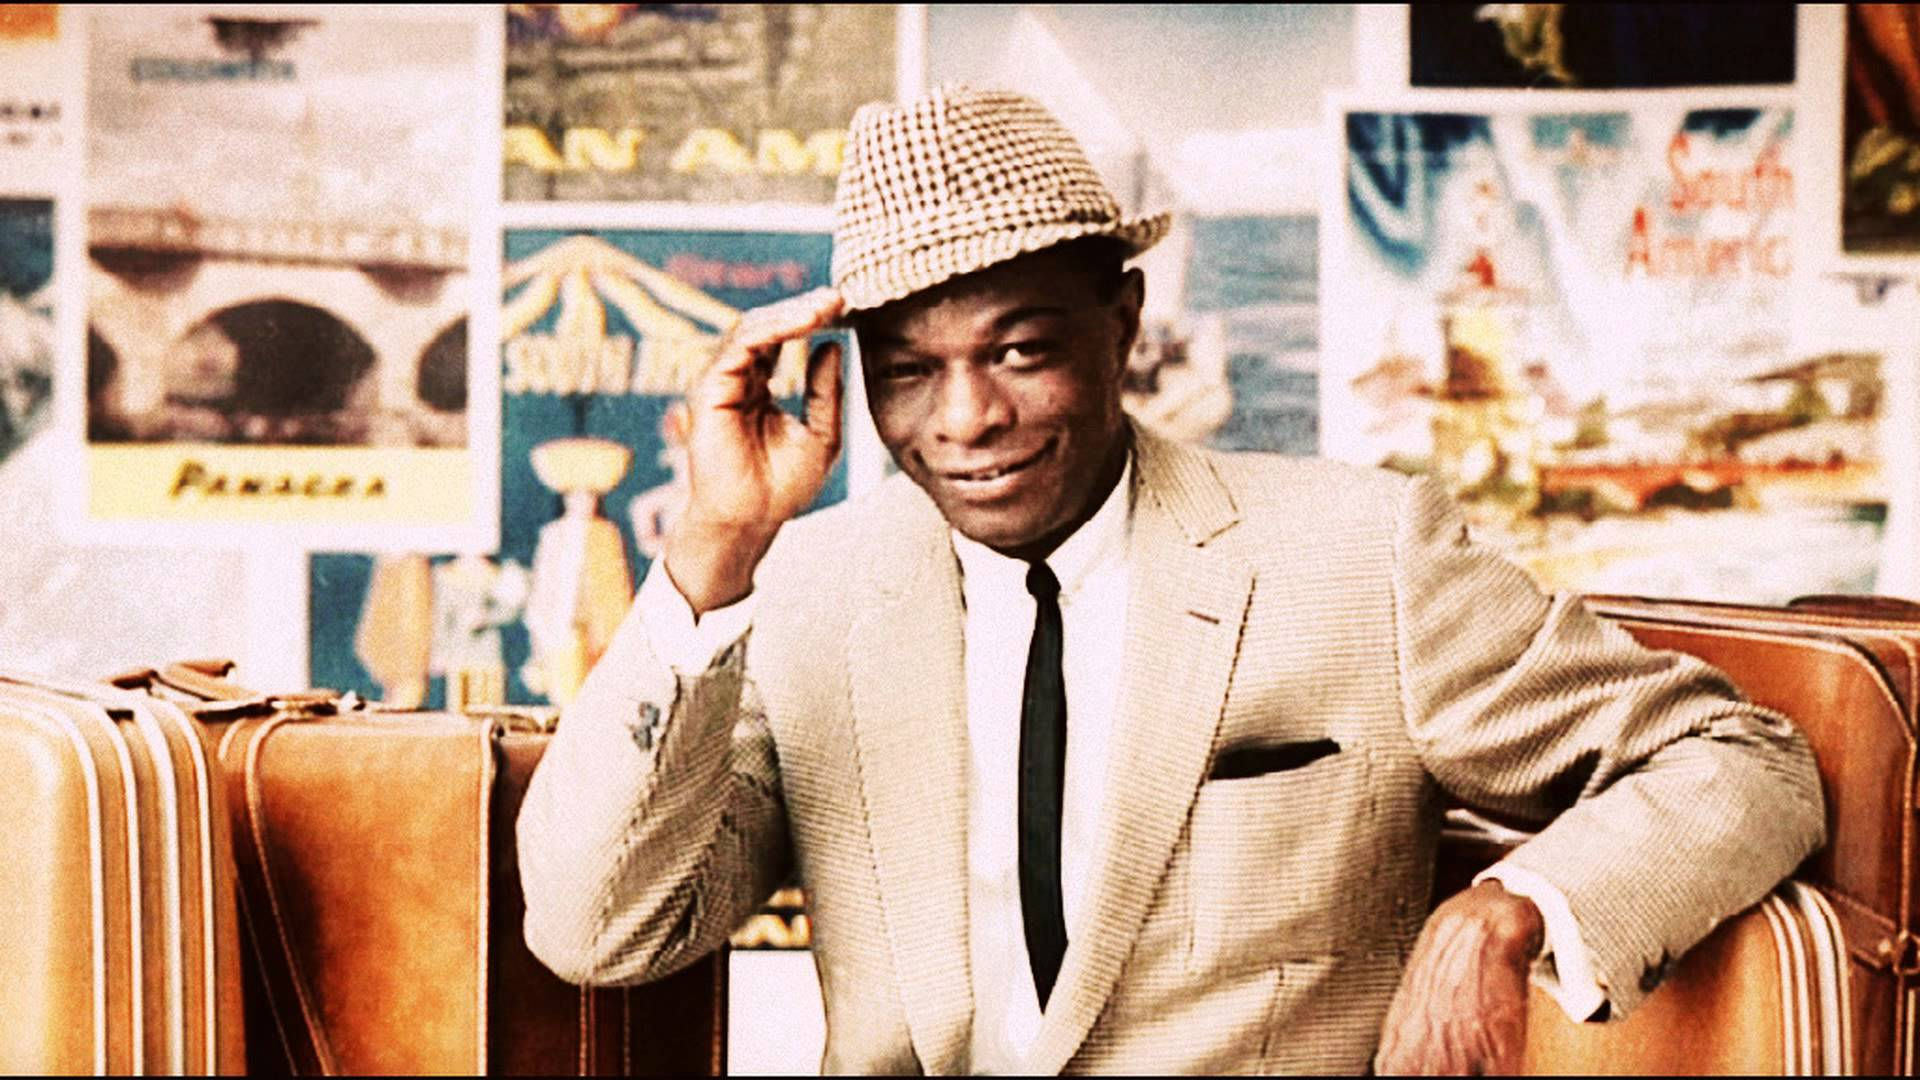 Nat King Cole (Image via: youtube.com)